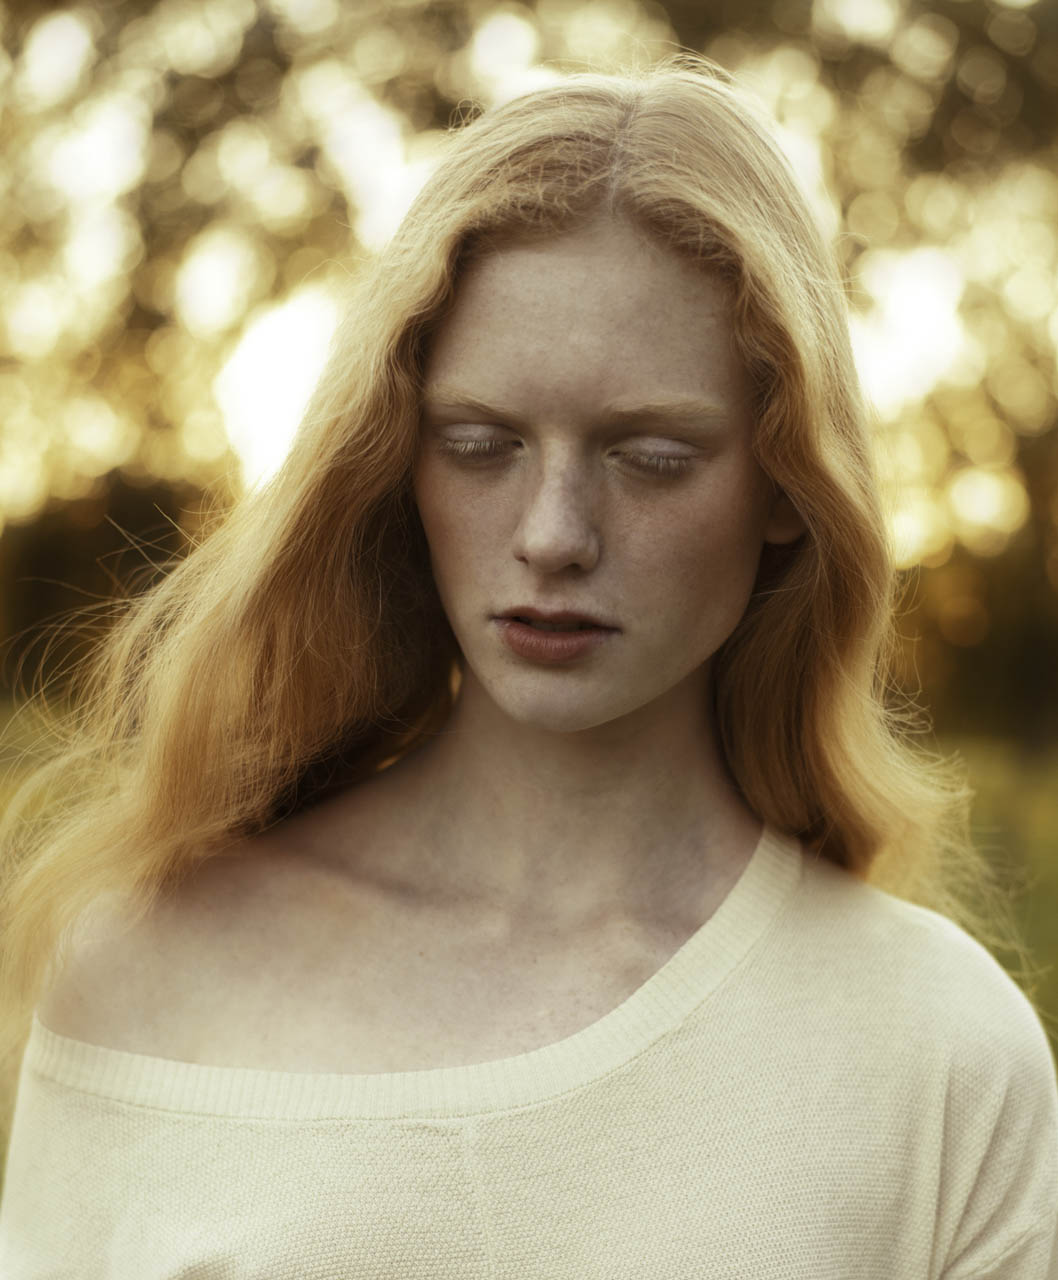 The-Forest-Magazine_Caitlin-Bellah_0021